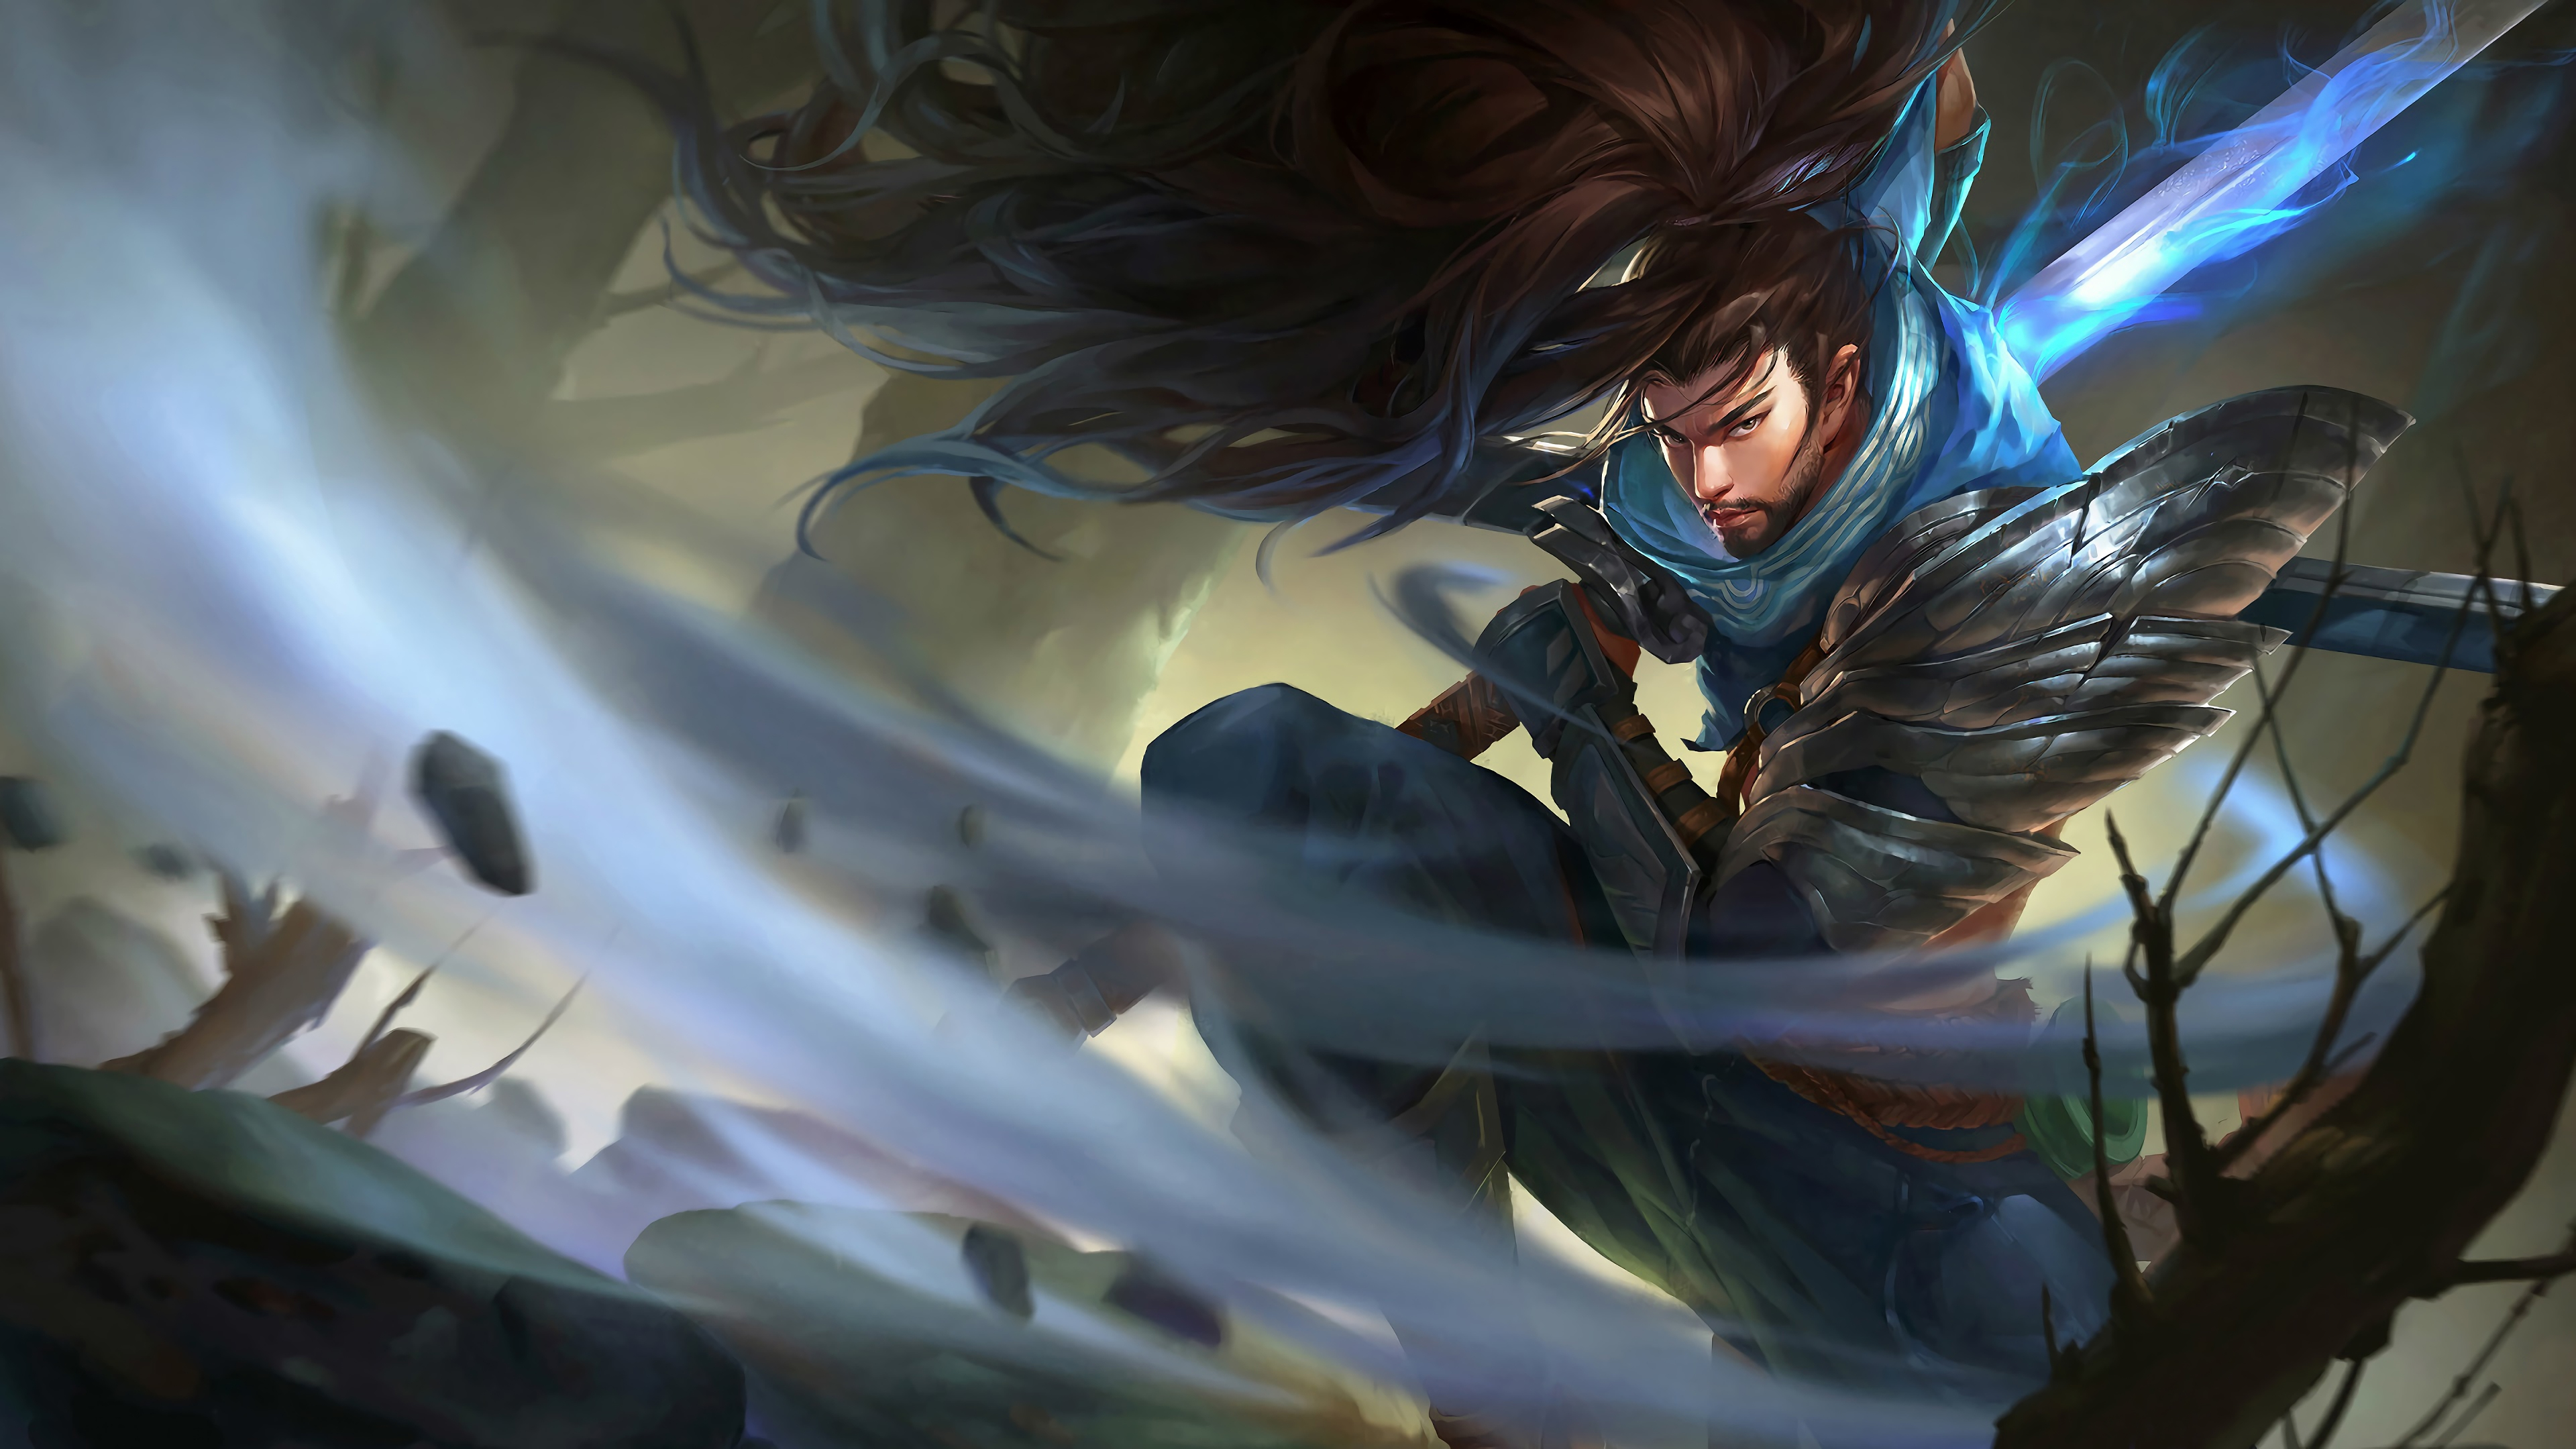 Yasuo League Of Legends Wallpaper 4k 3840x2160 Download Hd Wallpaper Wallpapertip